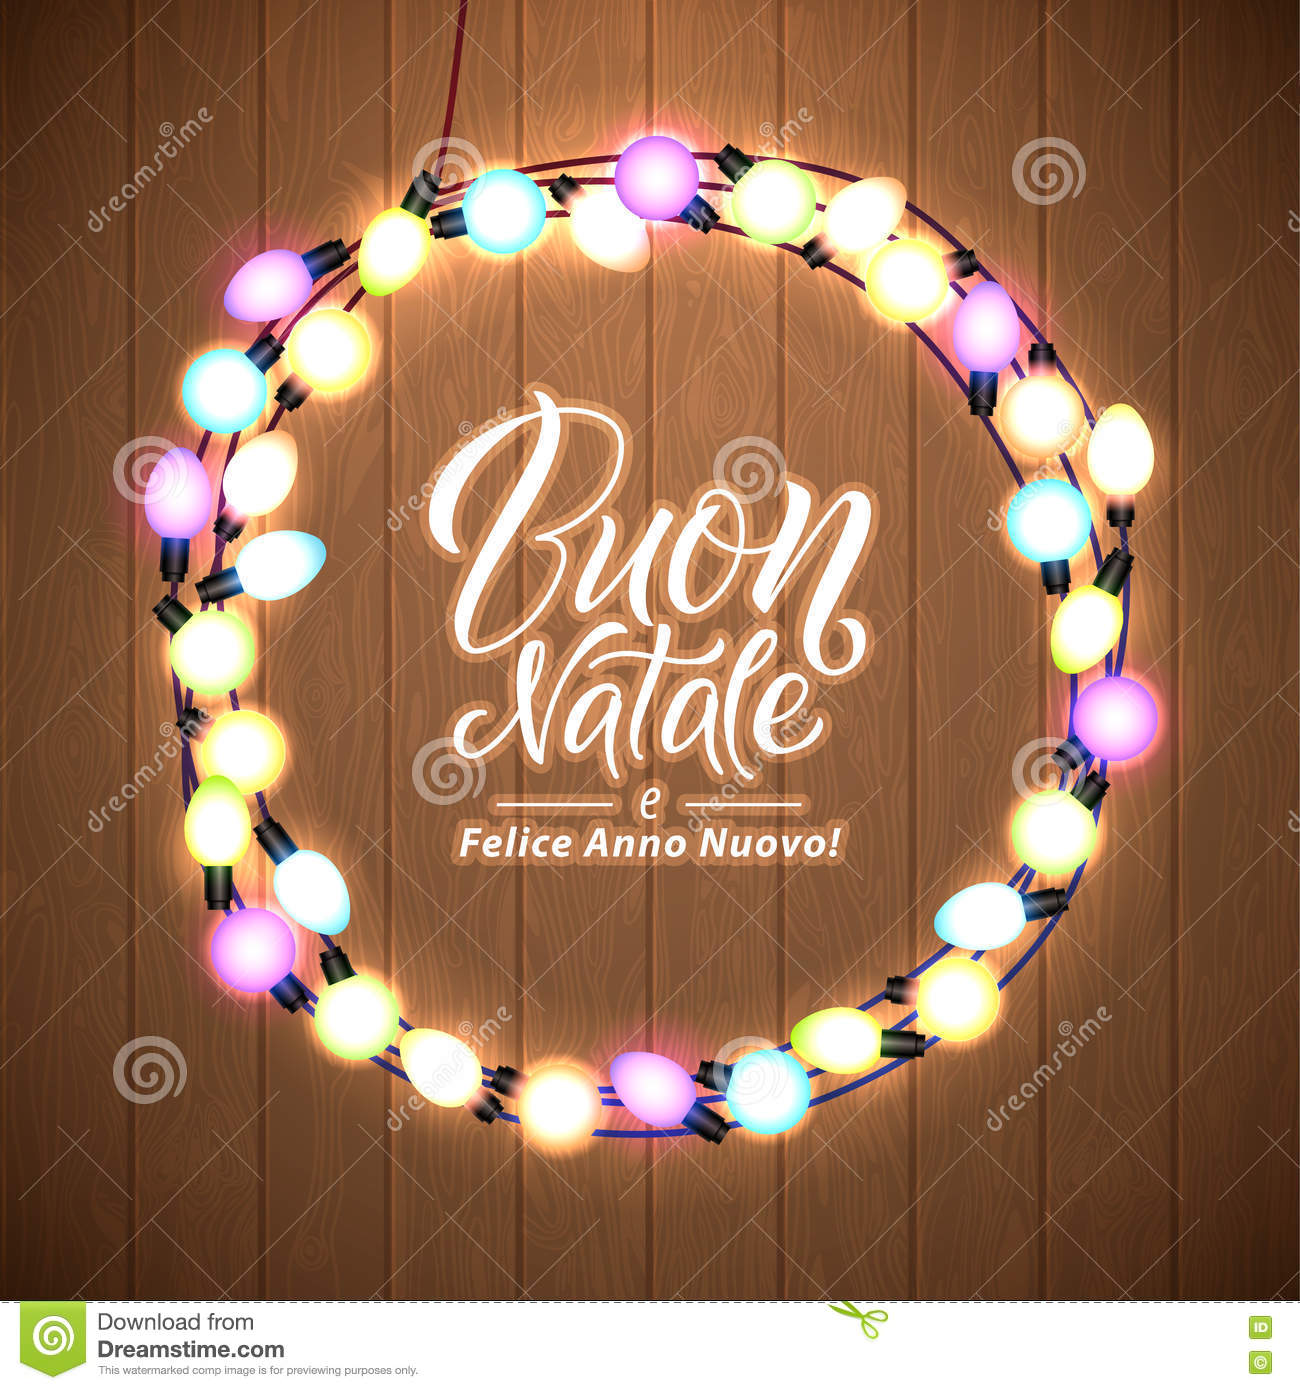 merry christmas and happy new year italian language glowing christmas lights wreath for xmas